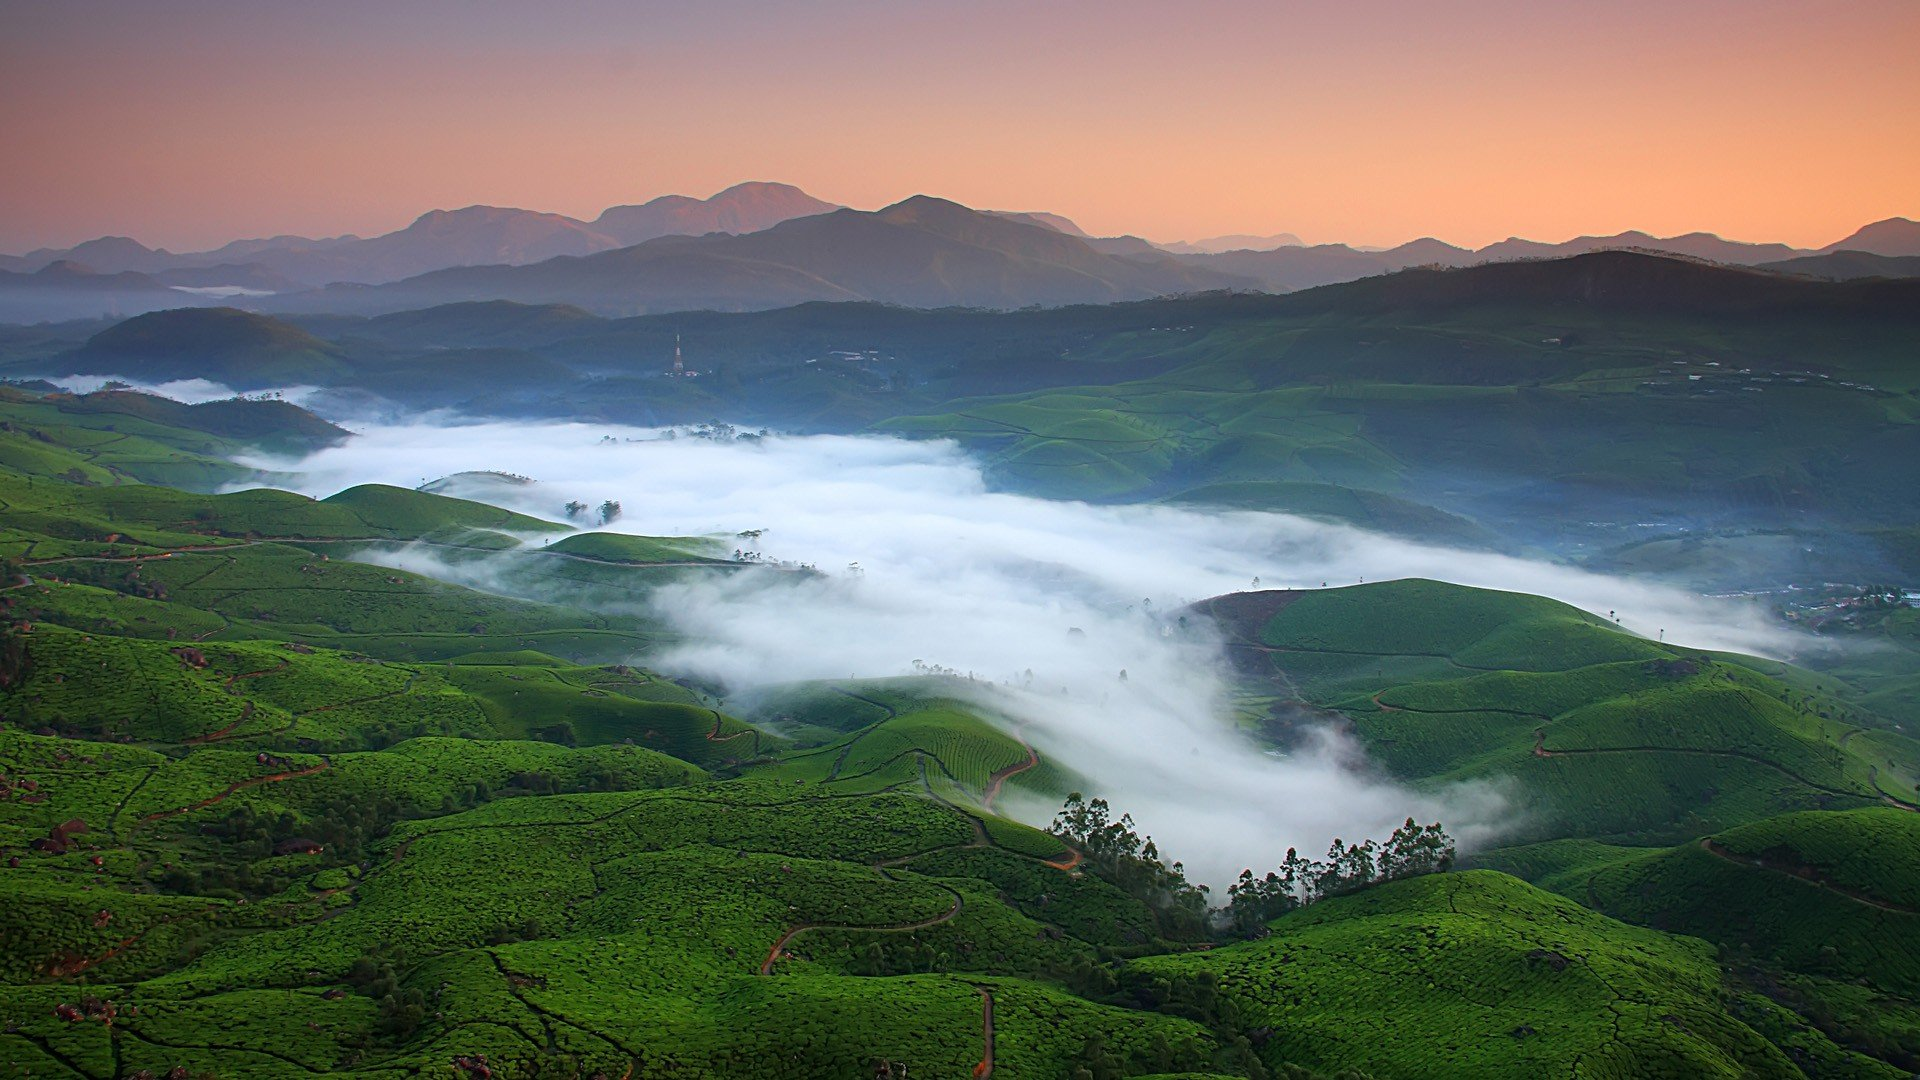 Pictures of Valleys in India Fields Valleys Mist India